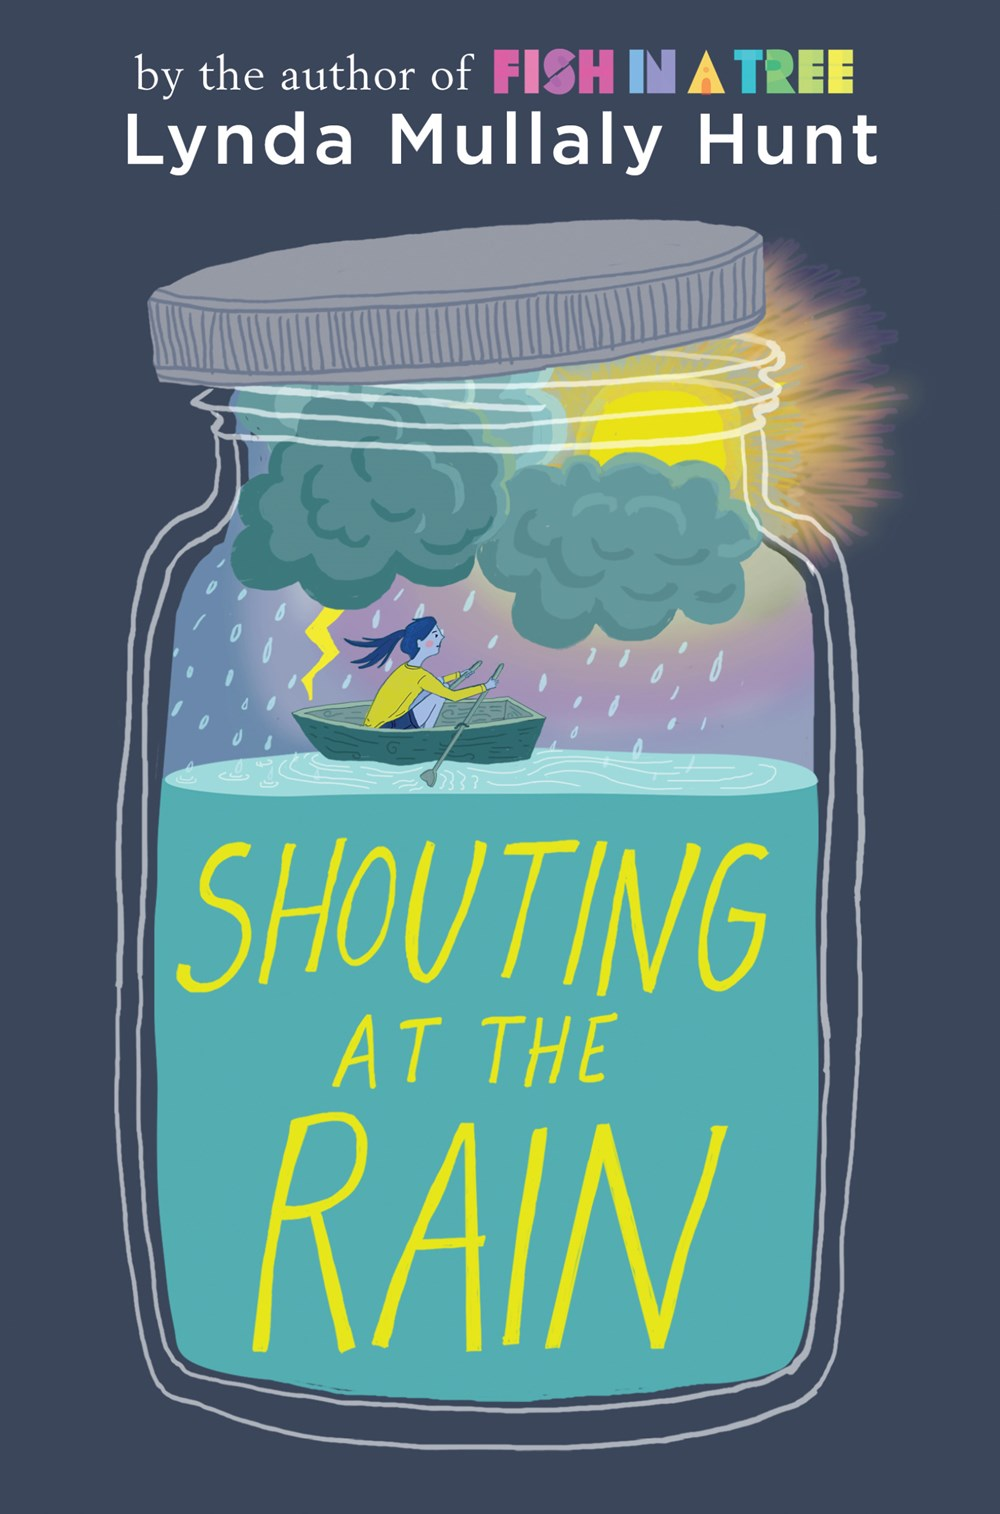 Book Trailer Premiere: Shouting at the Rain by Lynda Mullaly Hunt